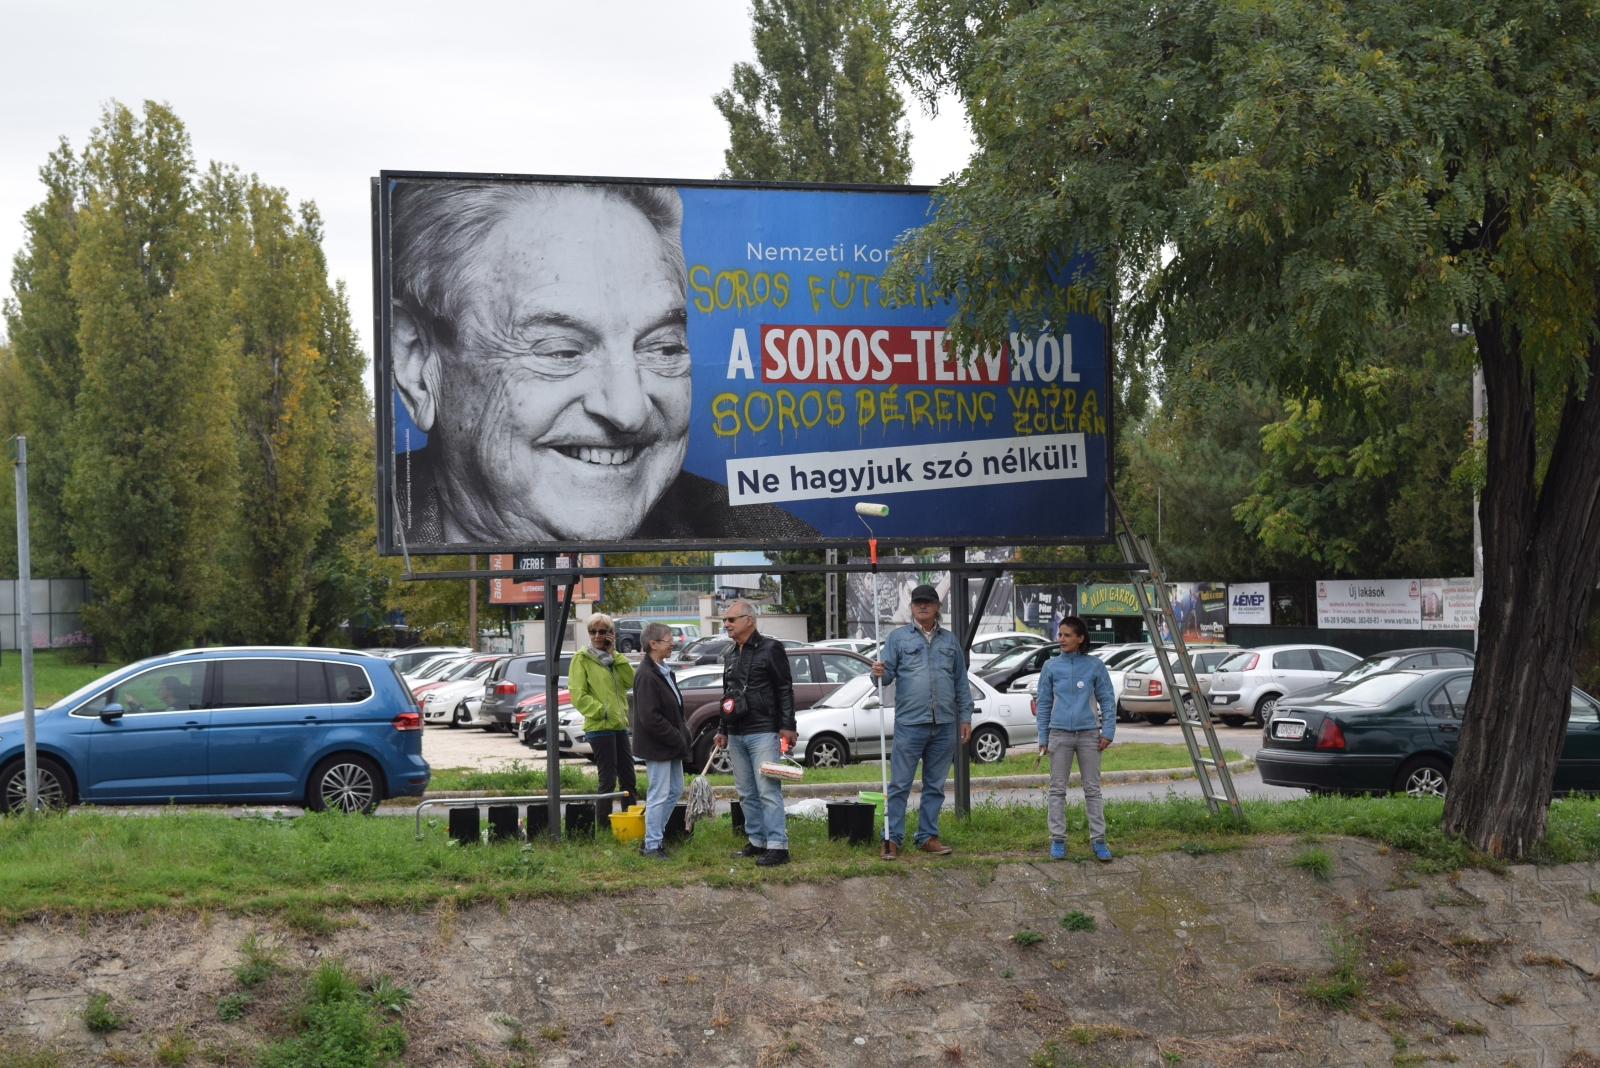 FILE - In this Oct. 5, 2017 file photo activists from the Egyutt (Together) opposition party stand in front of billboards of the government's campaign against George Soros and his support for migration in Budapest. Hungarian-American financier and philanthropist George Soros said oppression of the opposition by Prime Minister Viktor Orban's government is greater than when Hungary was under Soviet domination. (AP Photo/Pablo Gorondi, file)